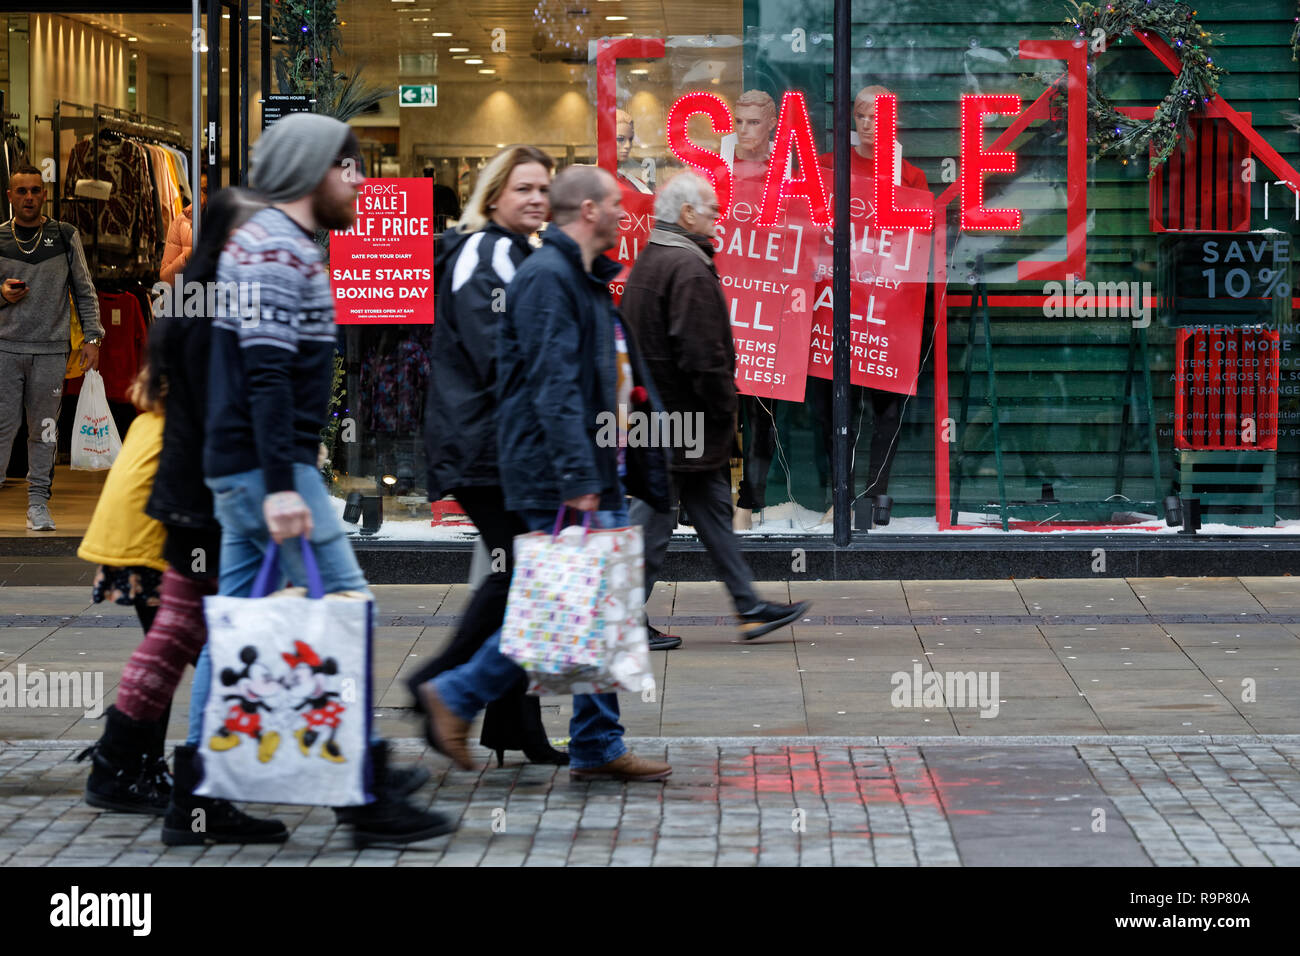 Last minute Christmas shoppers walk past a 'Sale' sign outside Next store in Oxford Street, Swansea, Wales, UK. Monday 24 December 2018 - Stock Image